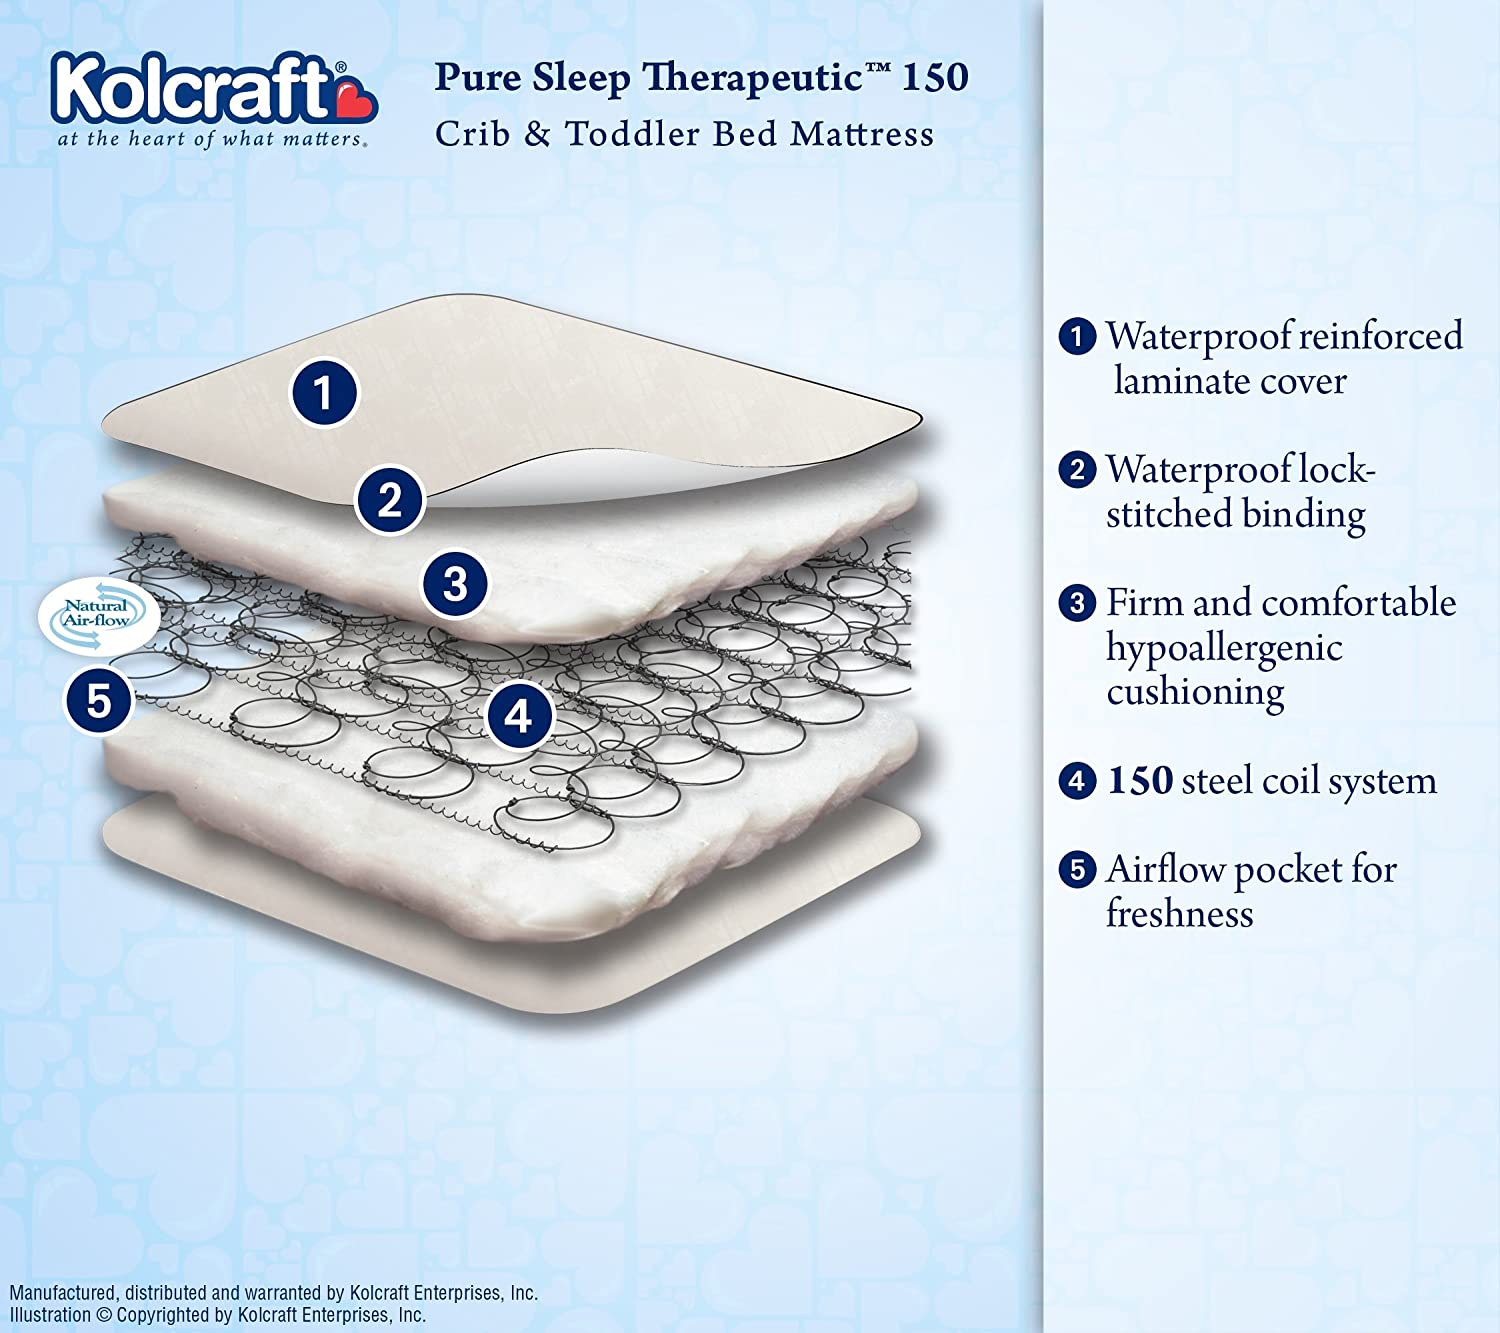 Amazon.com : Kolcraft Pure Sleep Therapeutic 150 Infant/Toddler Crib  Mattress  150 Extra Firm Coils, Hypoallergenic, Durable Waterproof Cover,  ...